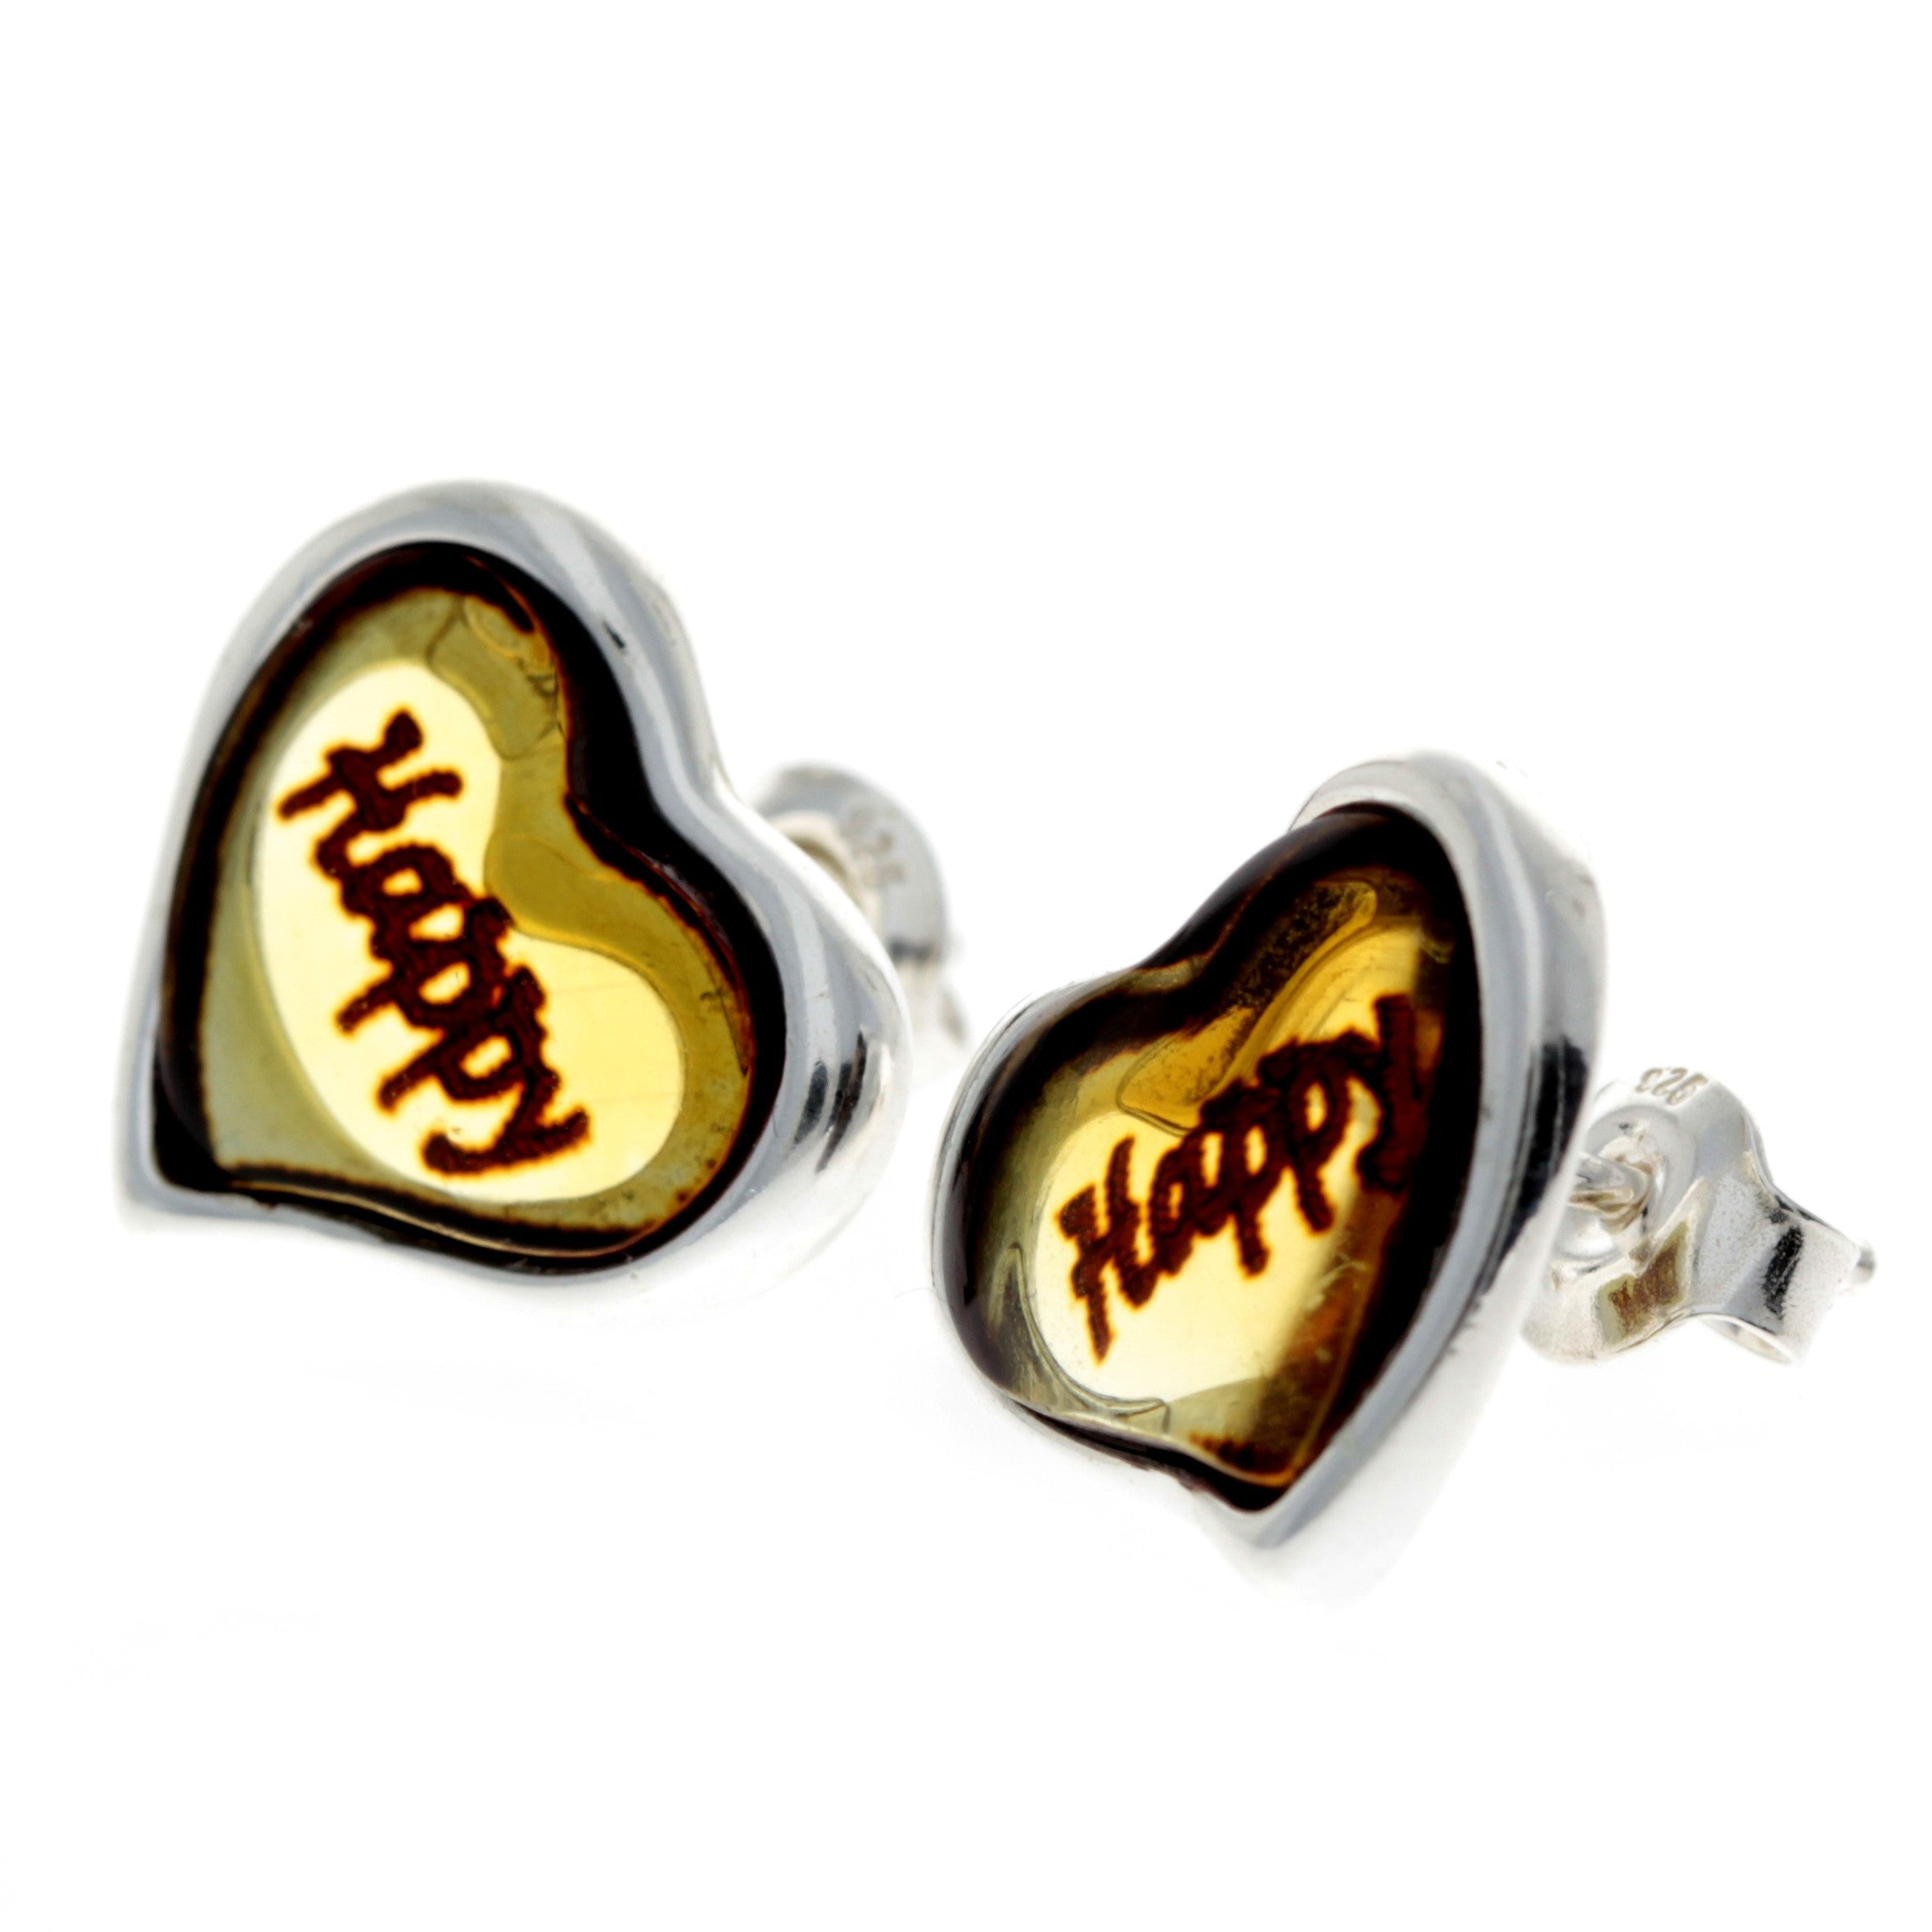 925 Sterling Silver & Baltic Amber Classic Heart Engraved Heart Studs Earrings - AC004